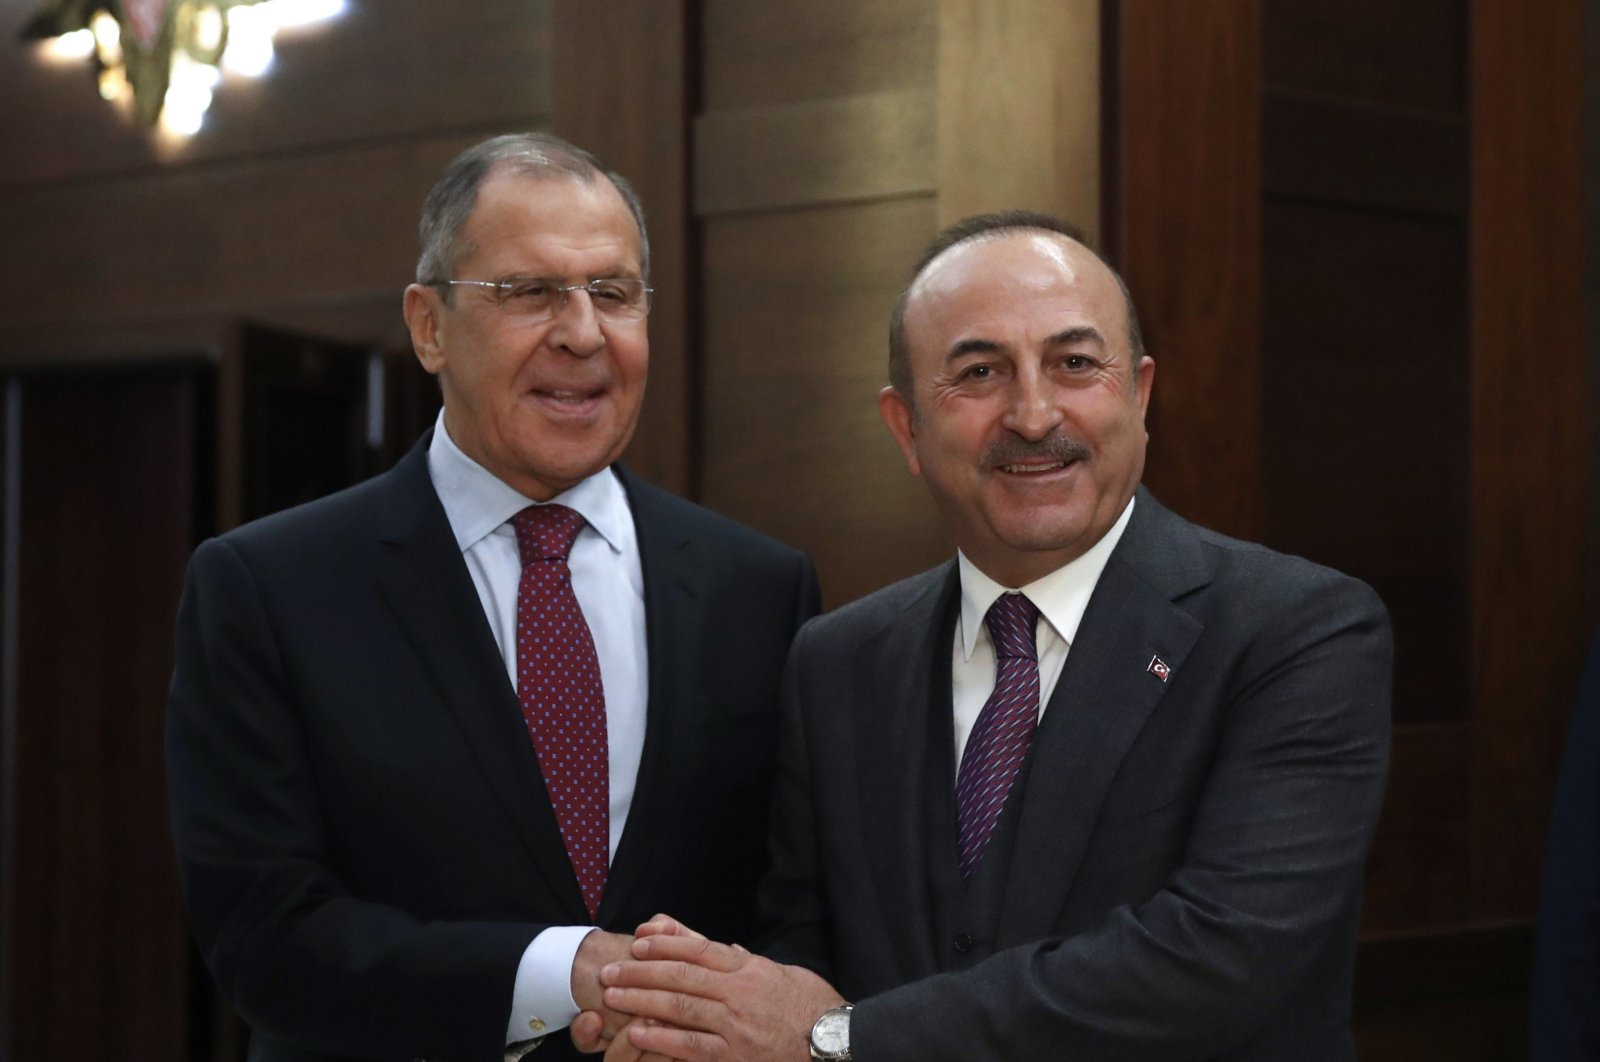 Foreign Minister Mevlüt Çavuşoğlu shakes hand with his Russian counterpart, Sergey Lavrov, January 2, 2019. (AA Photo)